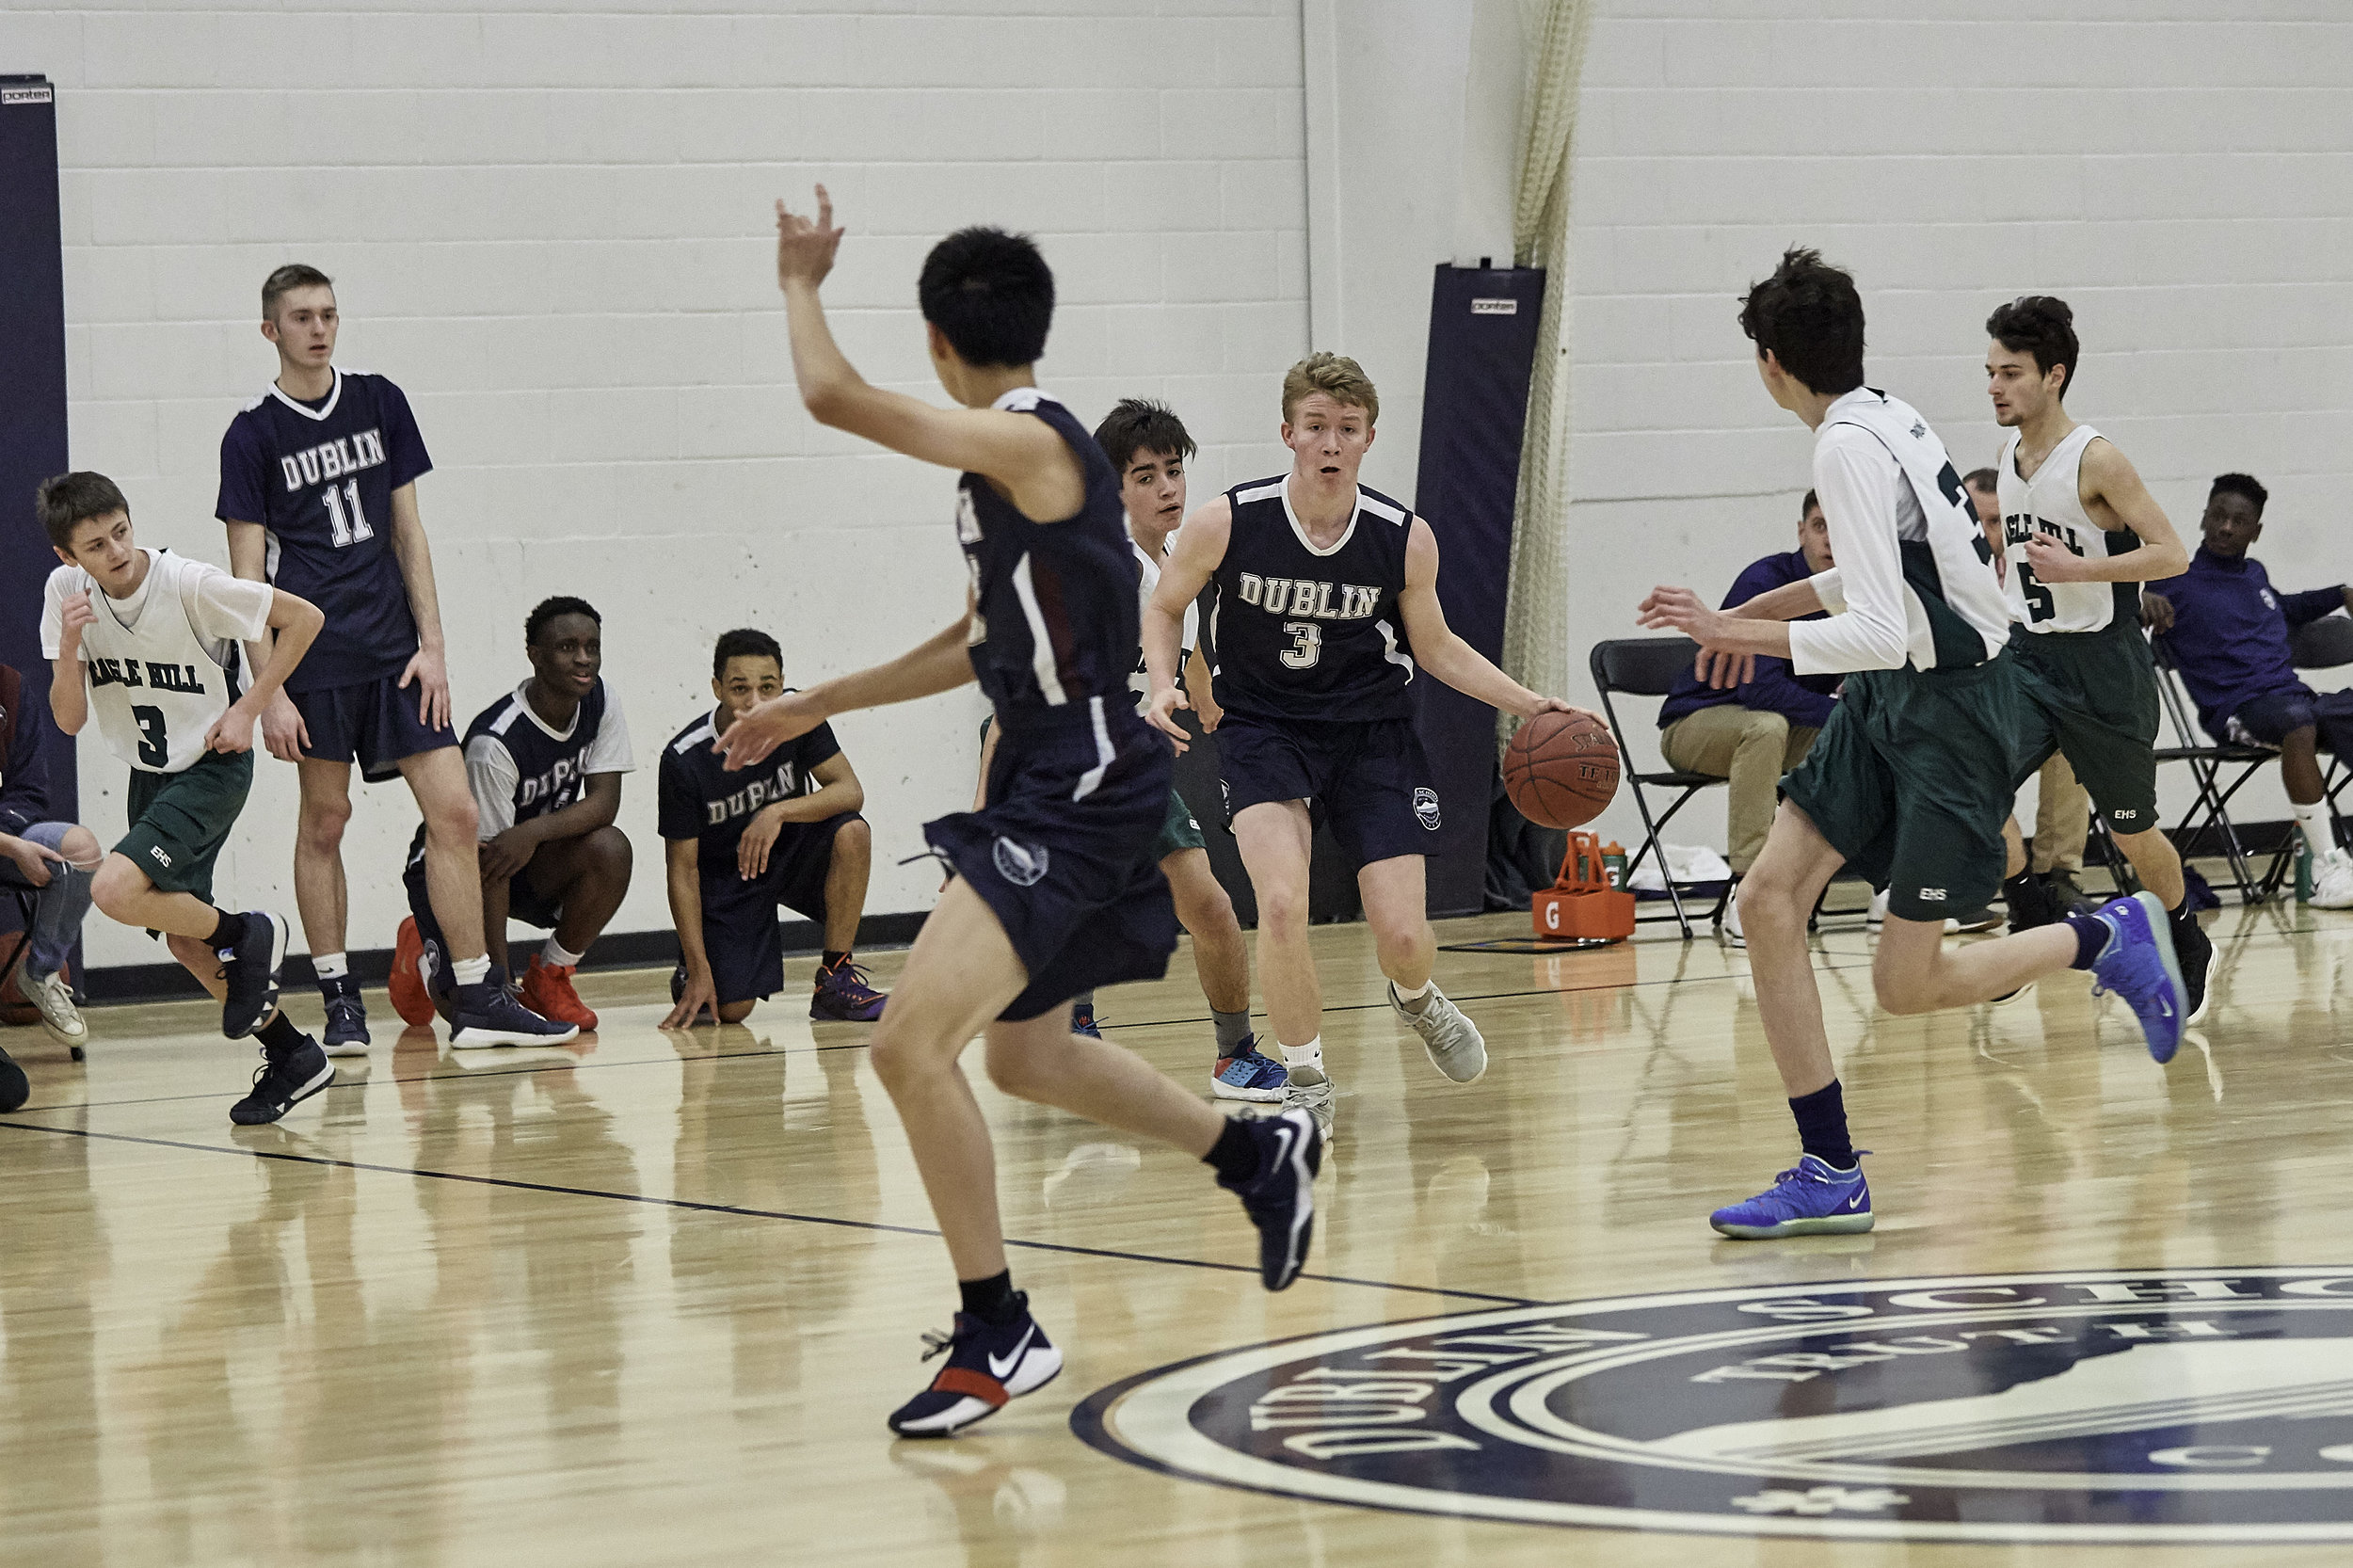 Boys Varsity Basketball vs. Eagle Hill School JV at RVAL Tournament - February 11, 2019 - 167832.jpg